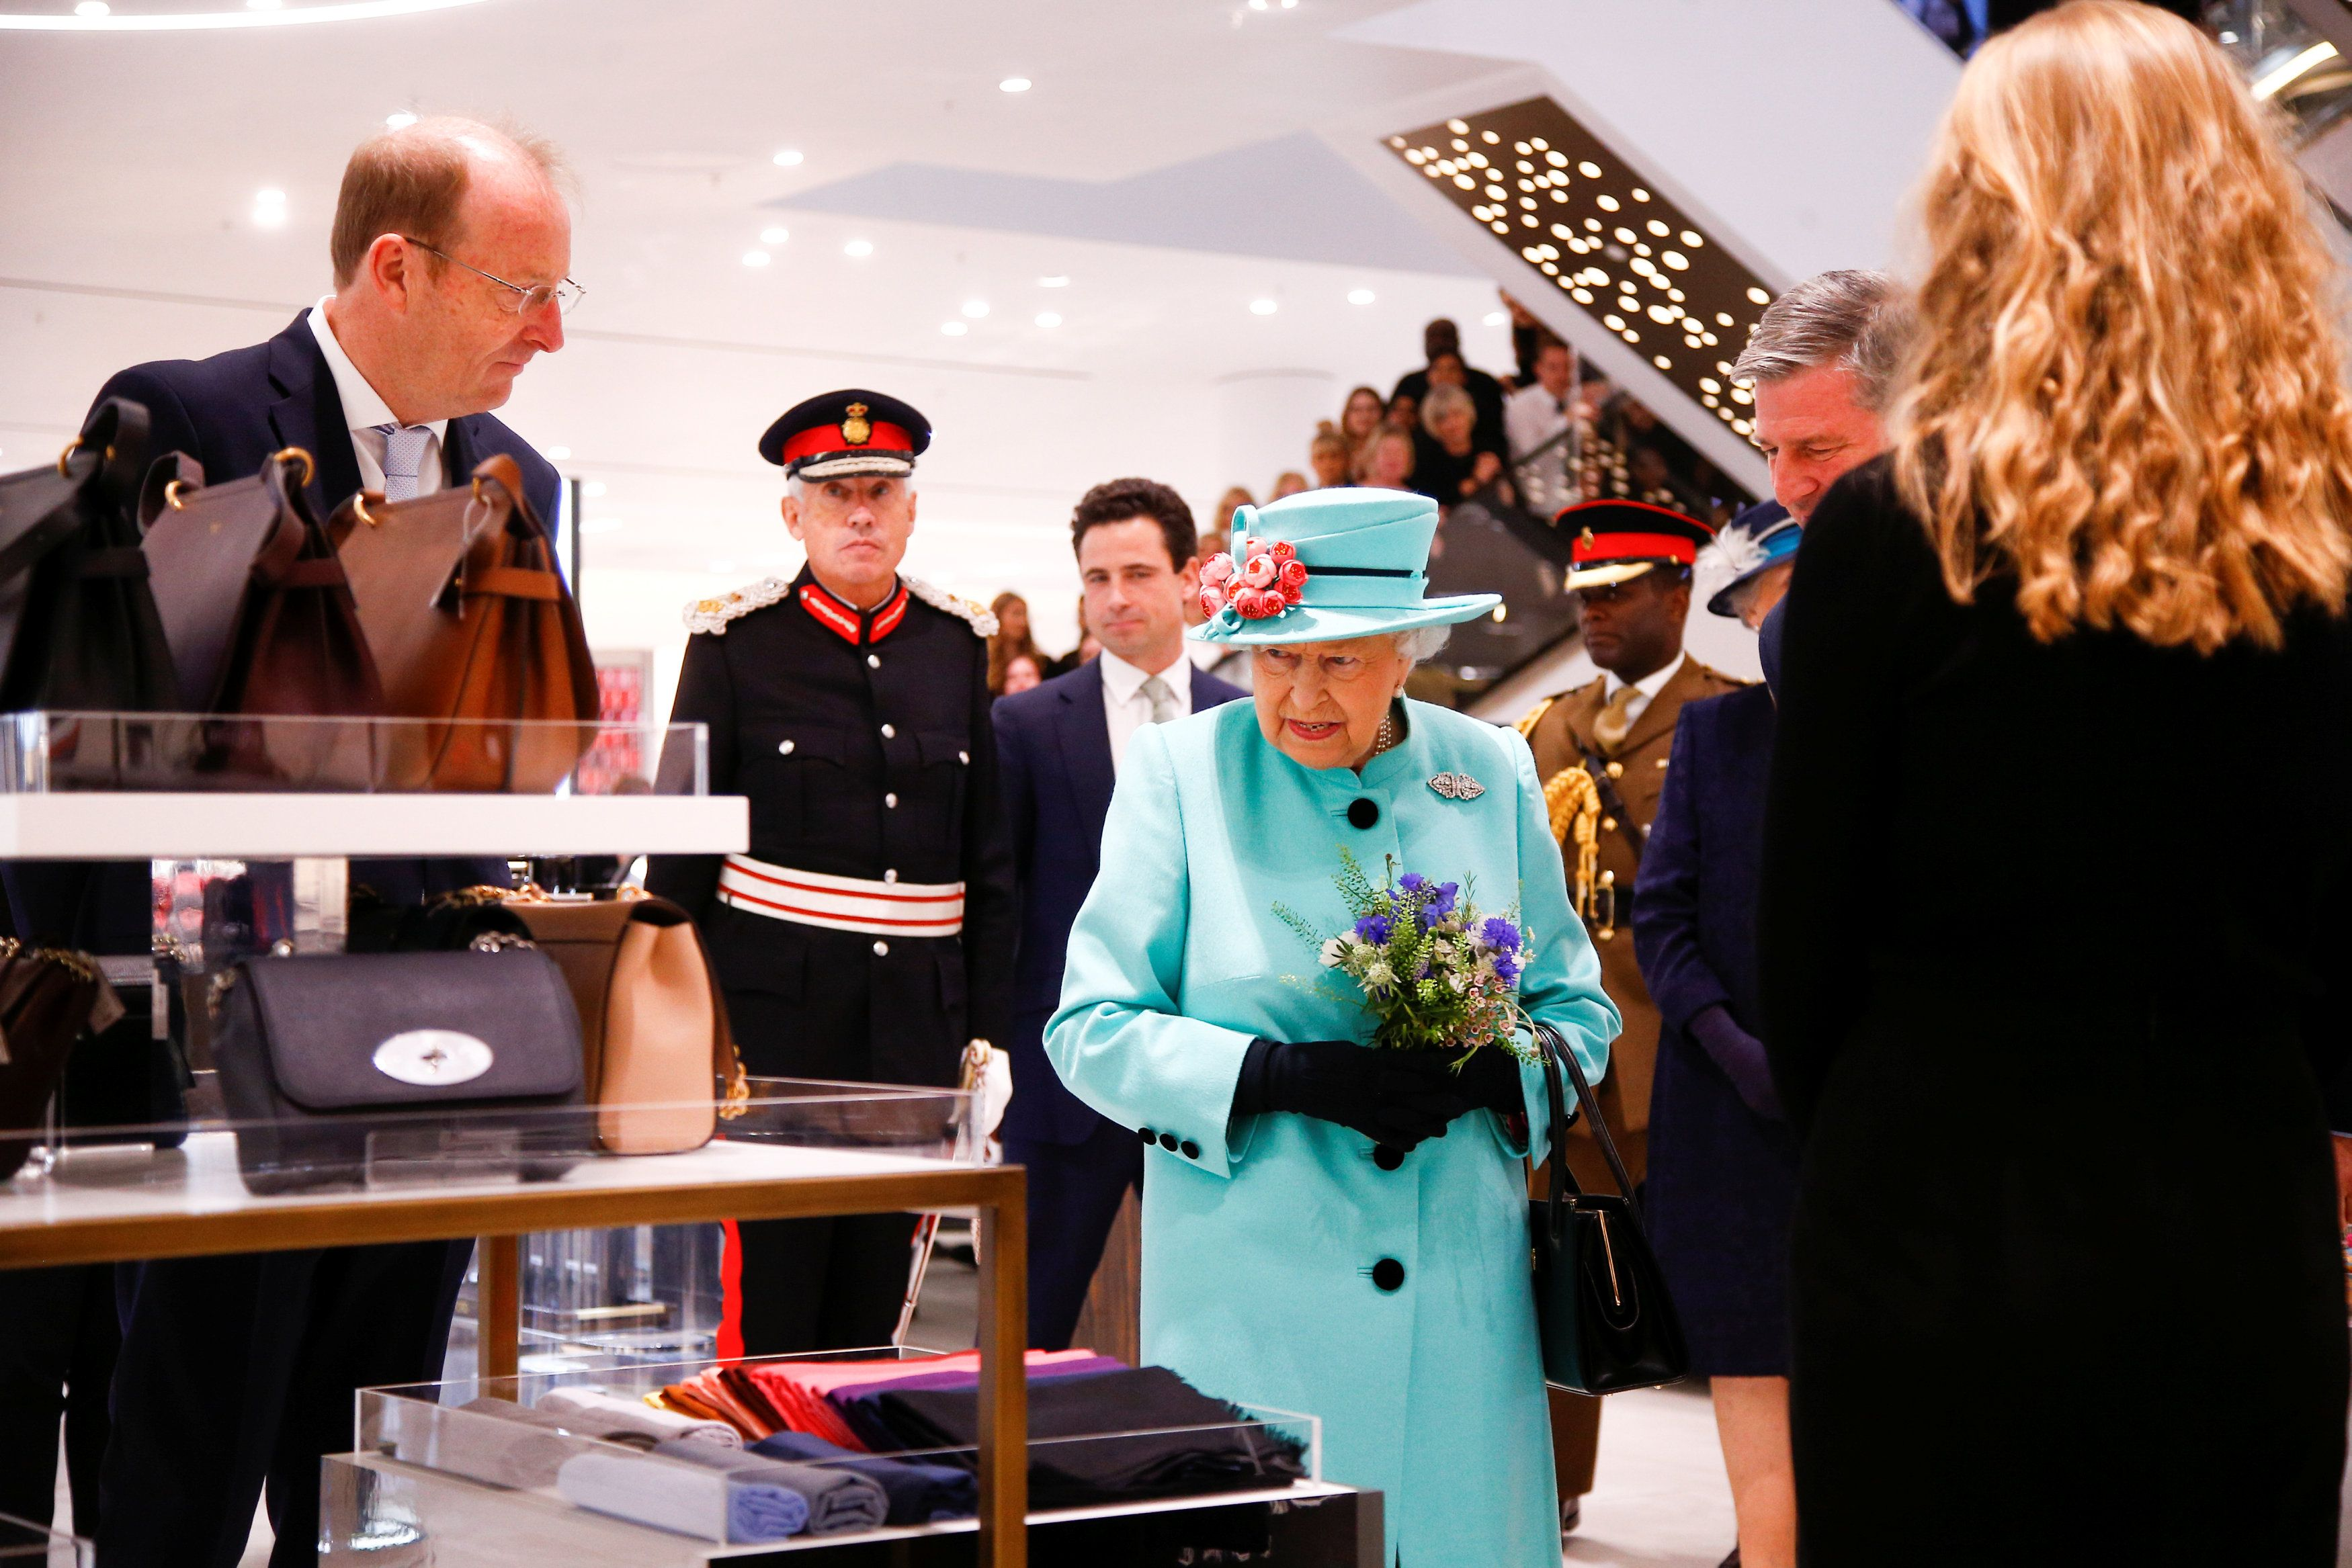 The Queen Visits The Lexicon